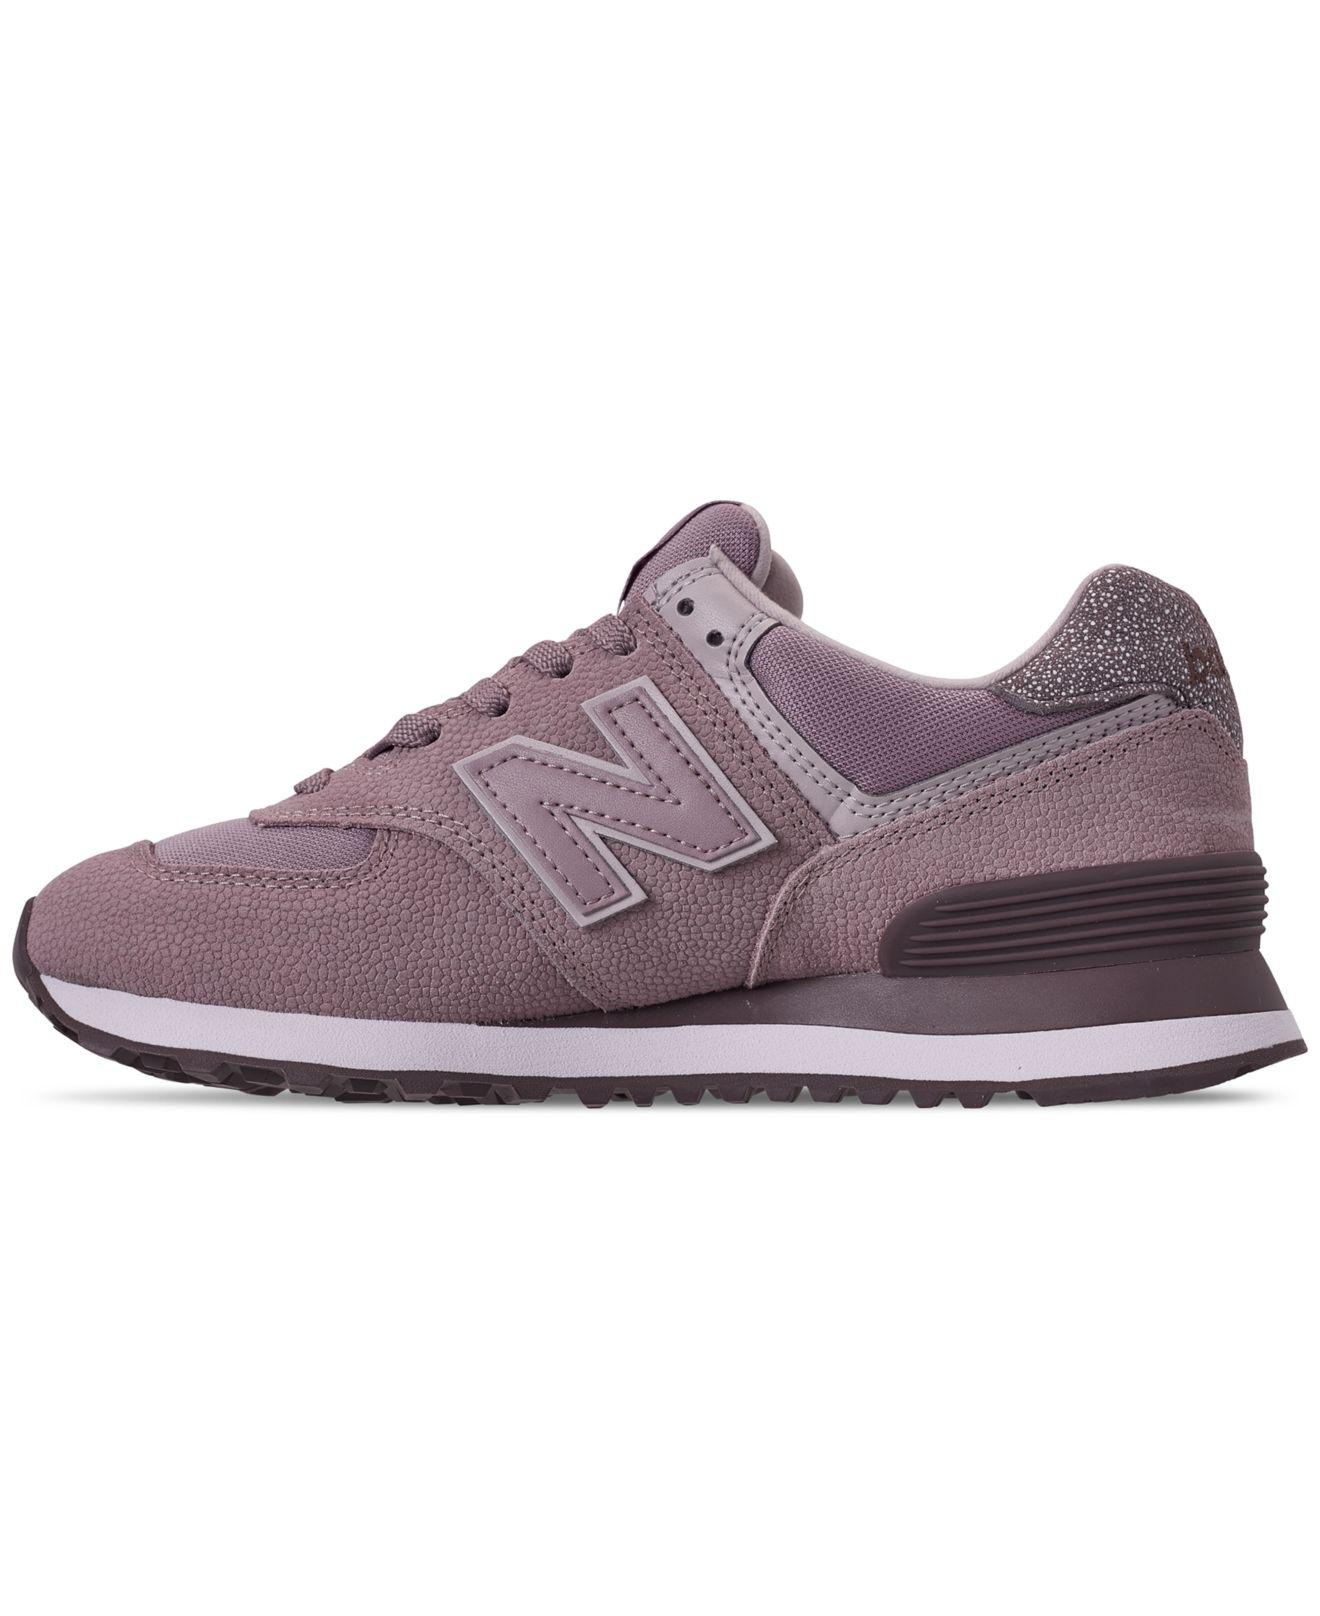 New Balance Suede 574 Pebbled Casual